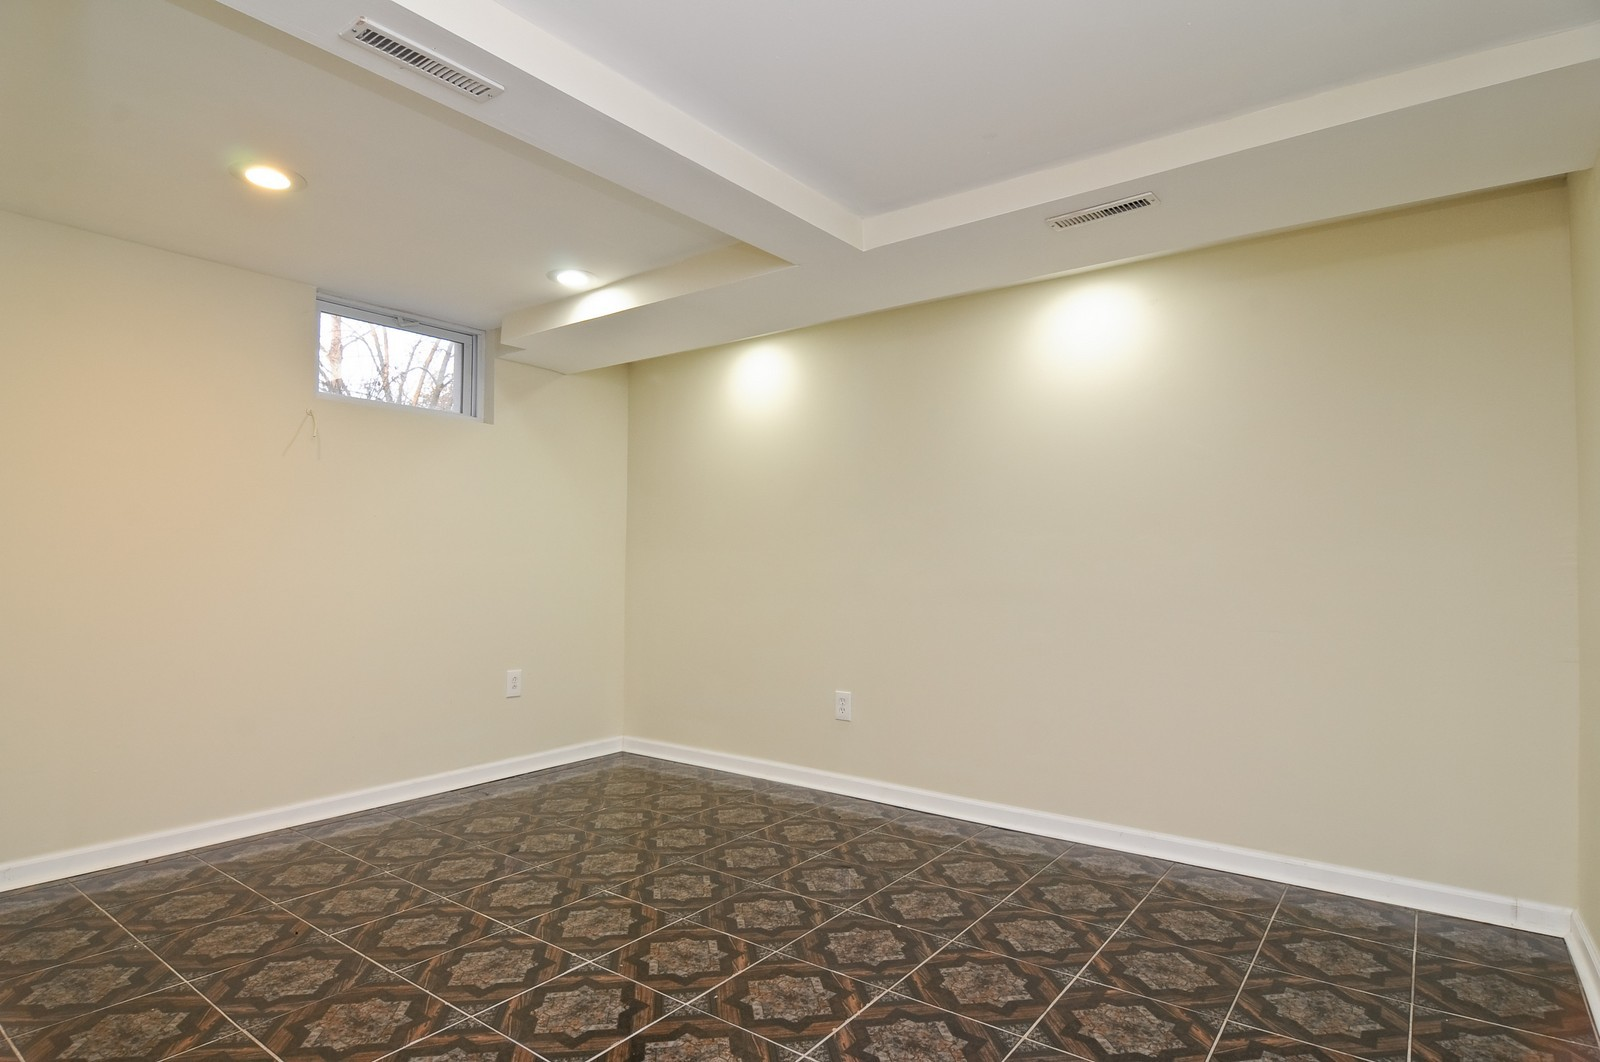 Real Estate Photography - 1516 N Jackson St, Waukegan, IL, 60085 - Lower Level